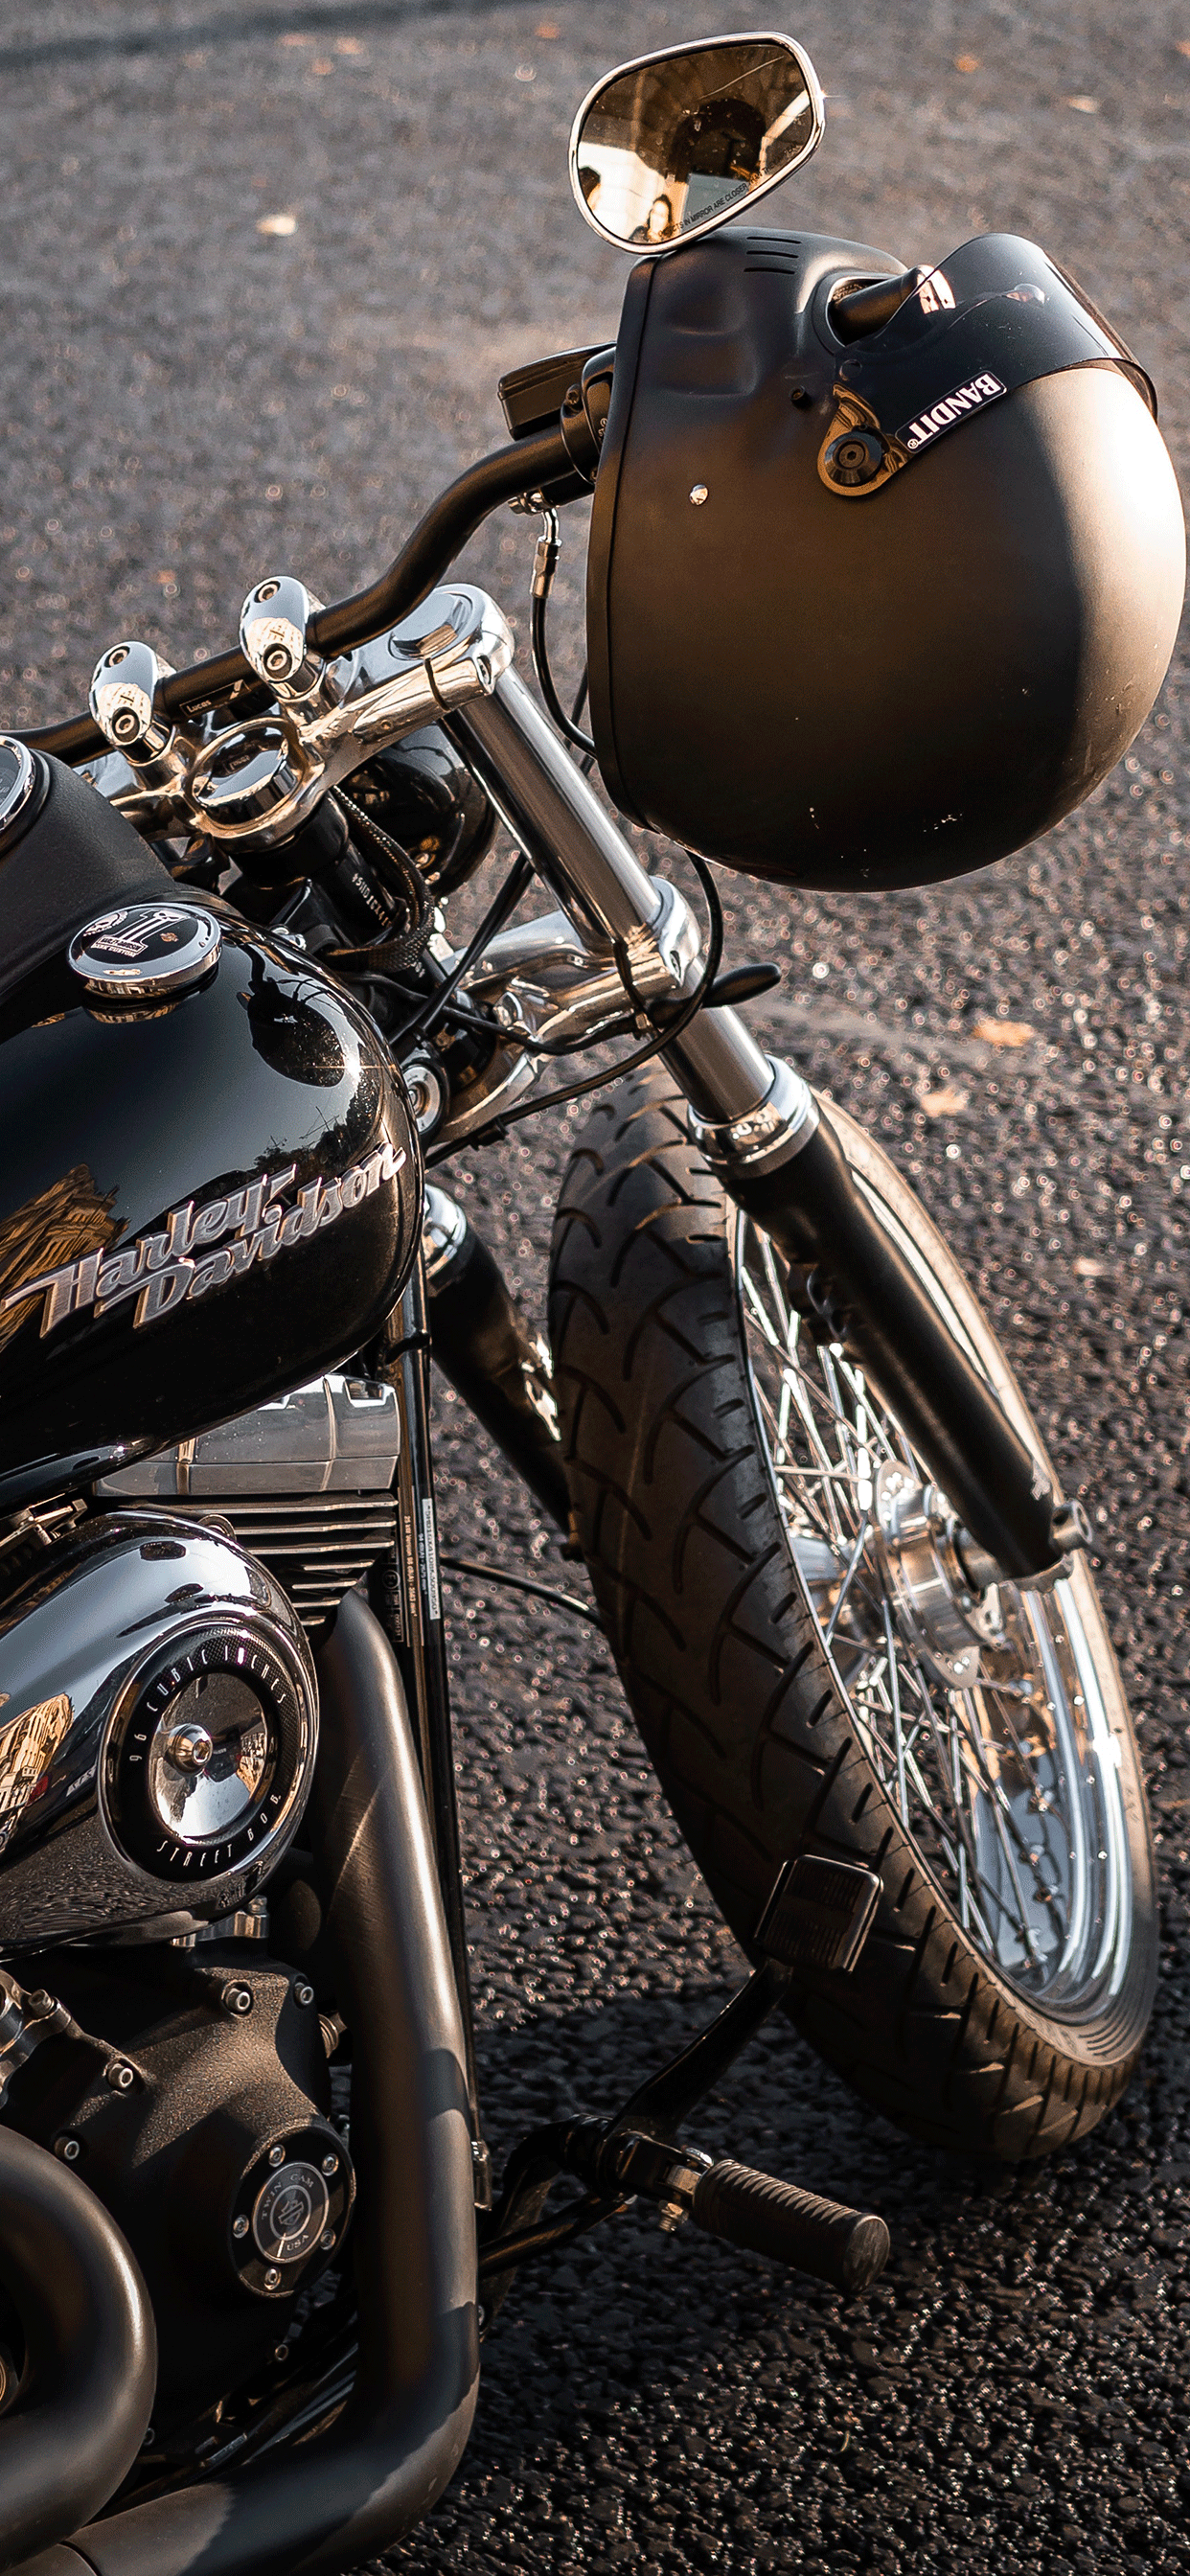 Harley Davidson Iphone Wallpaper ipcwallpapers in 2020